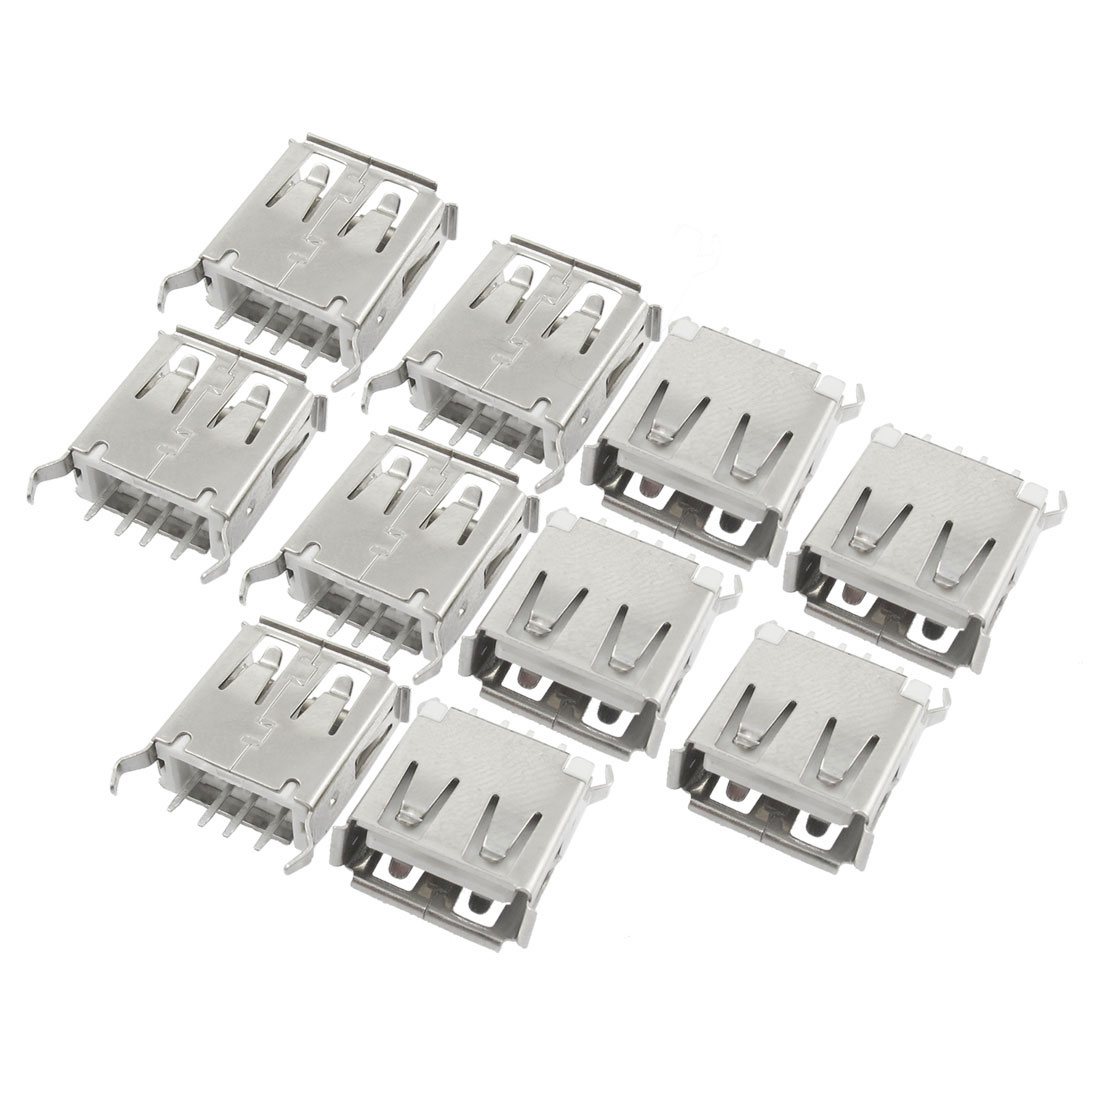 USB Type A Female Jack 180 Degree Crooked Leg PCB Socket Connector 10 pcs